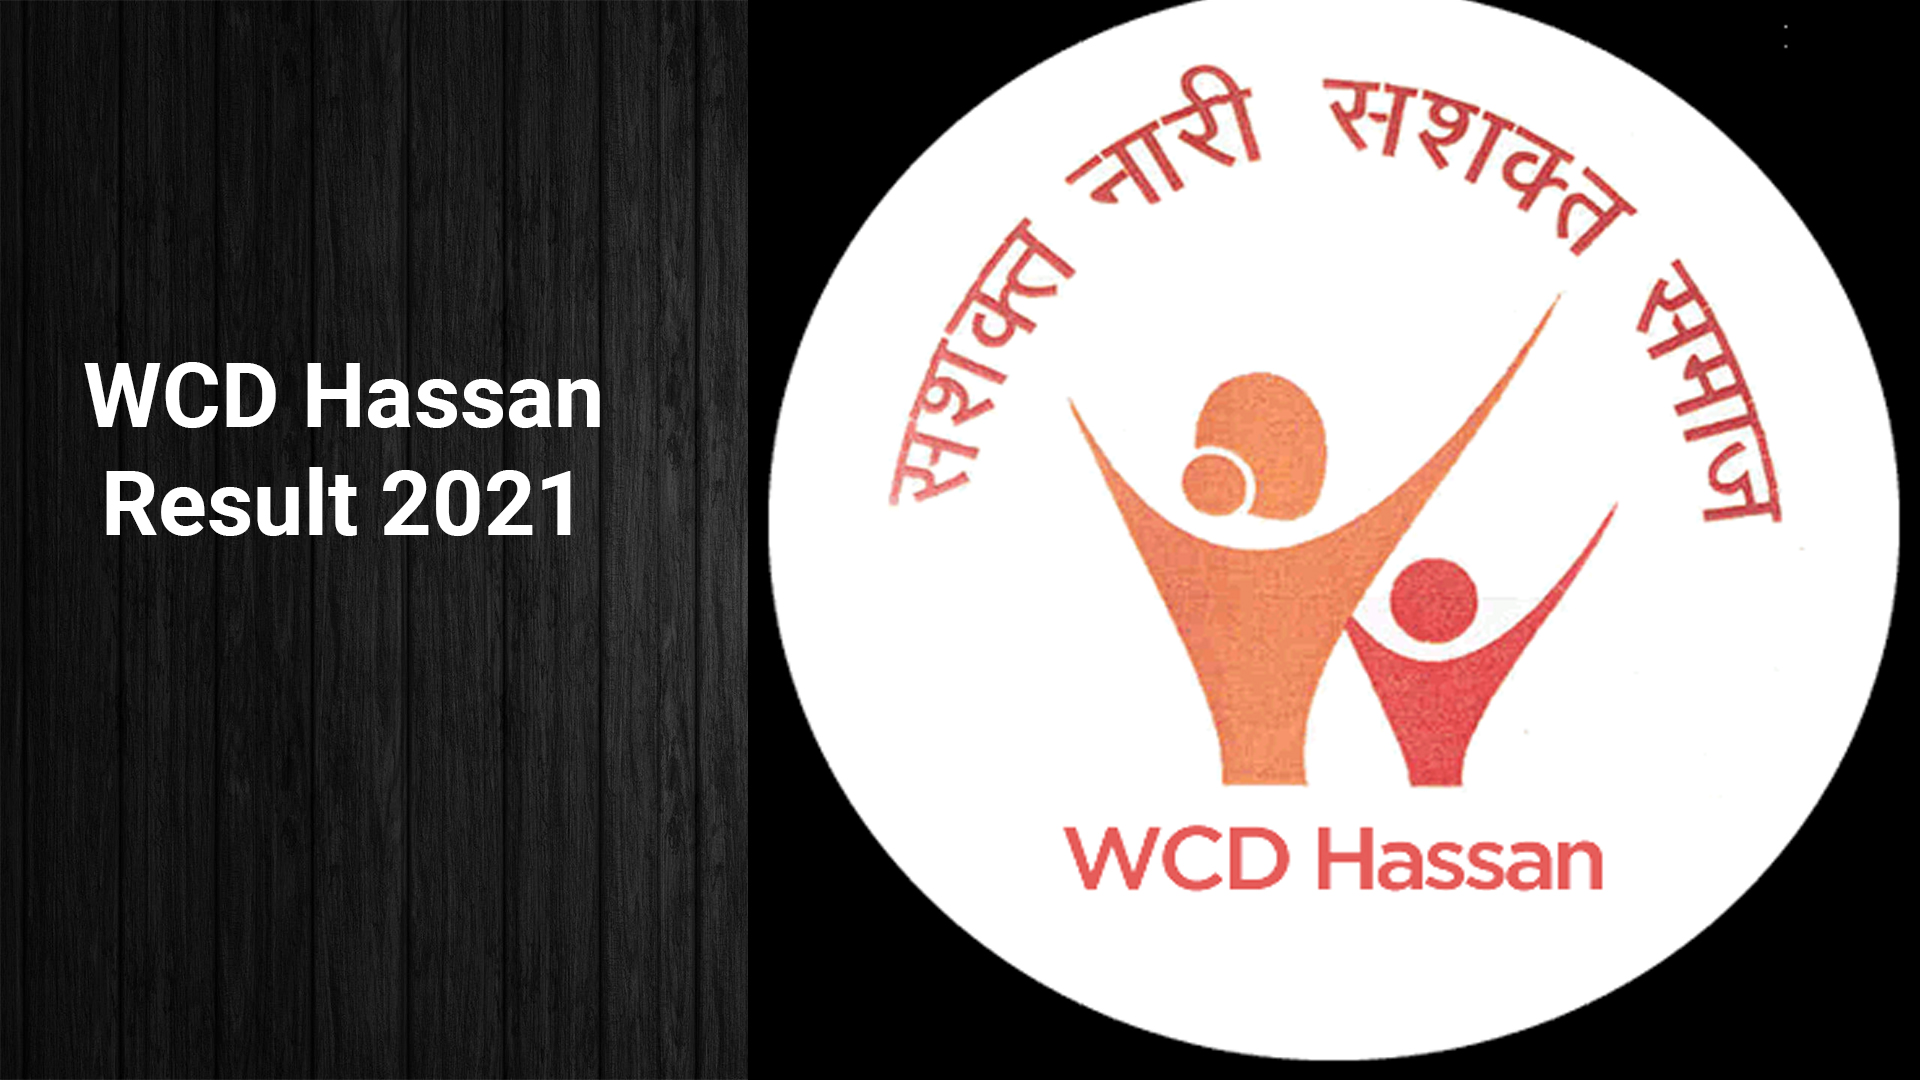 WCD Hassan Result 2021